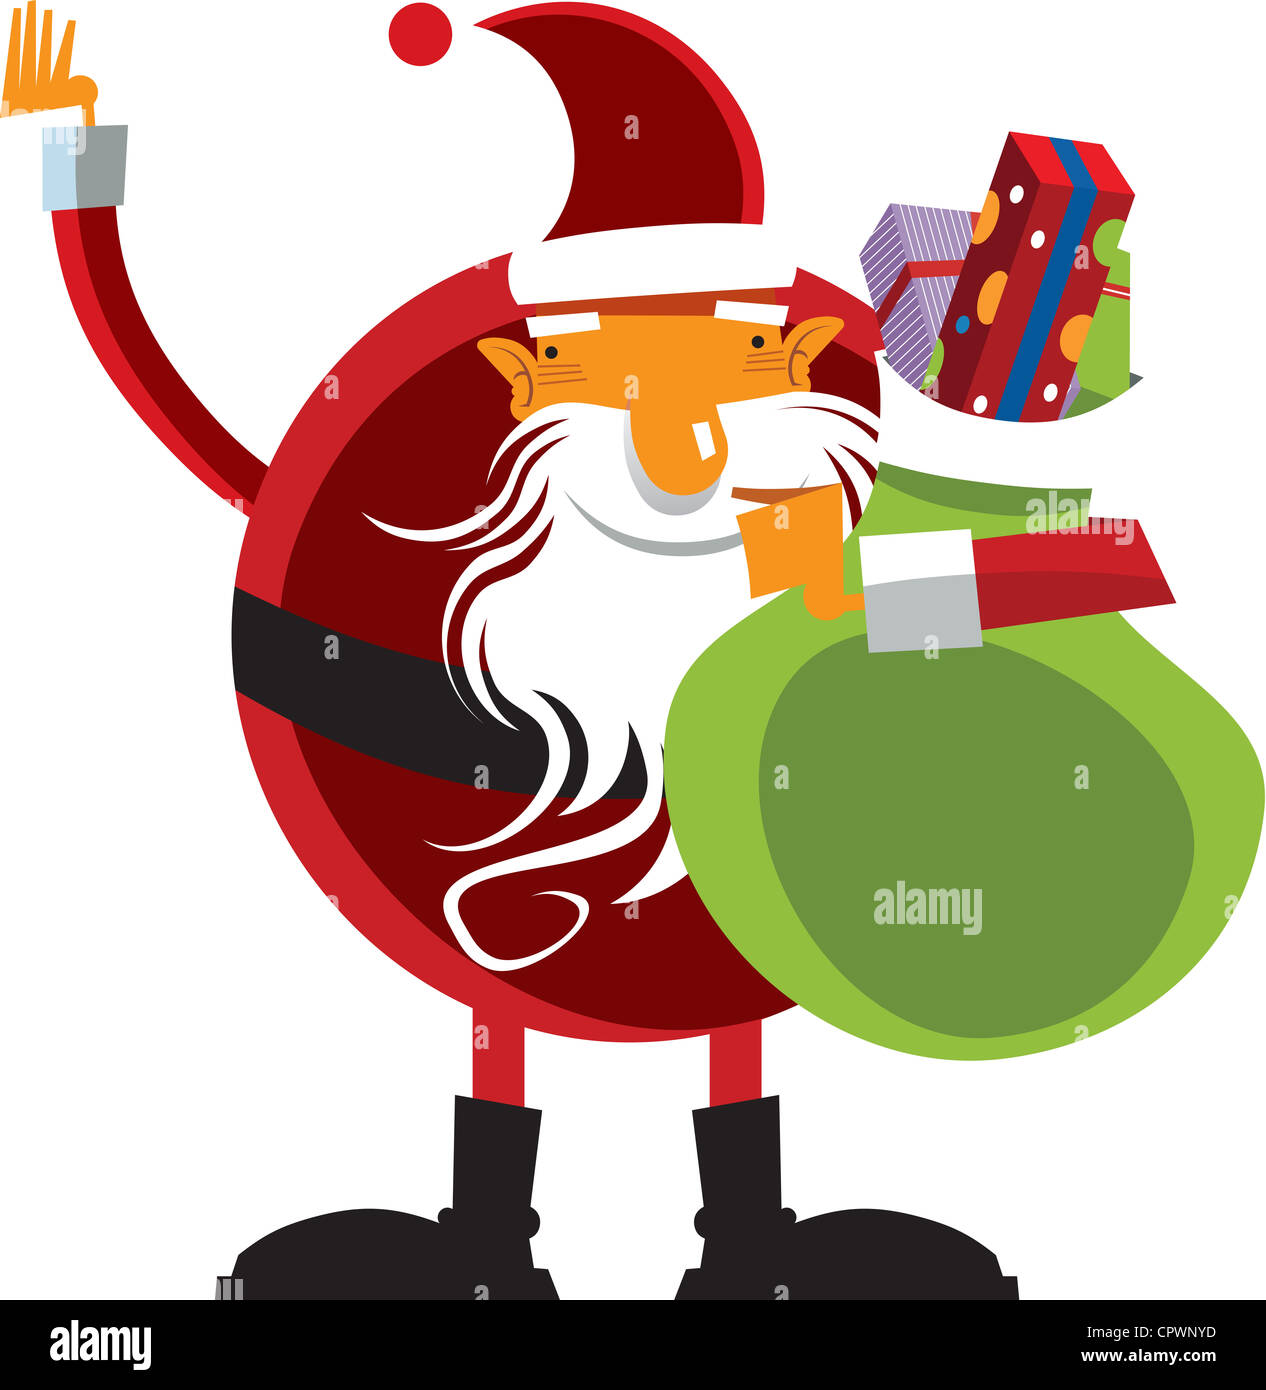 Santa holding a sack full of presents - Stock Image